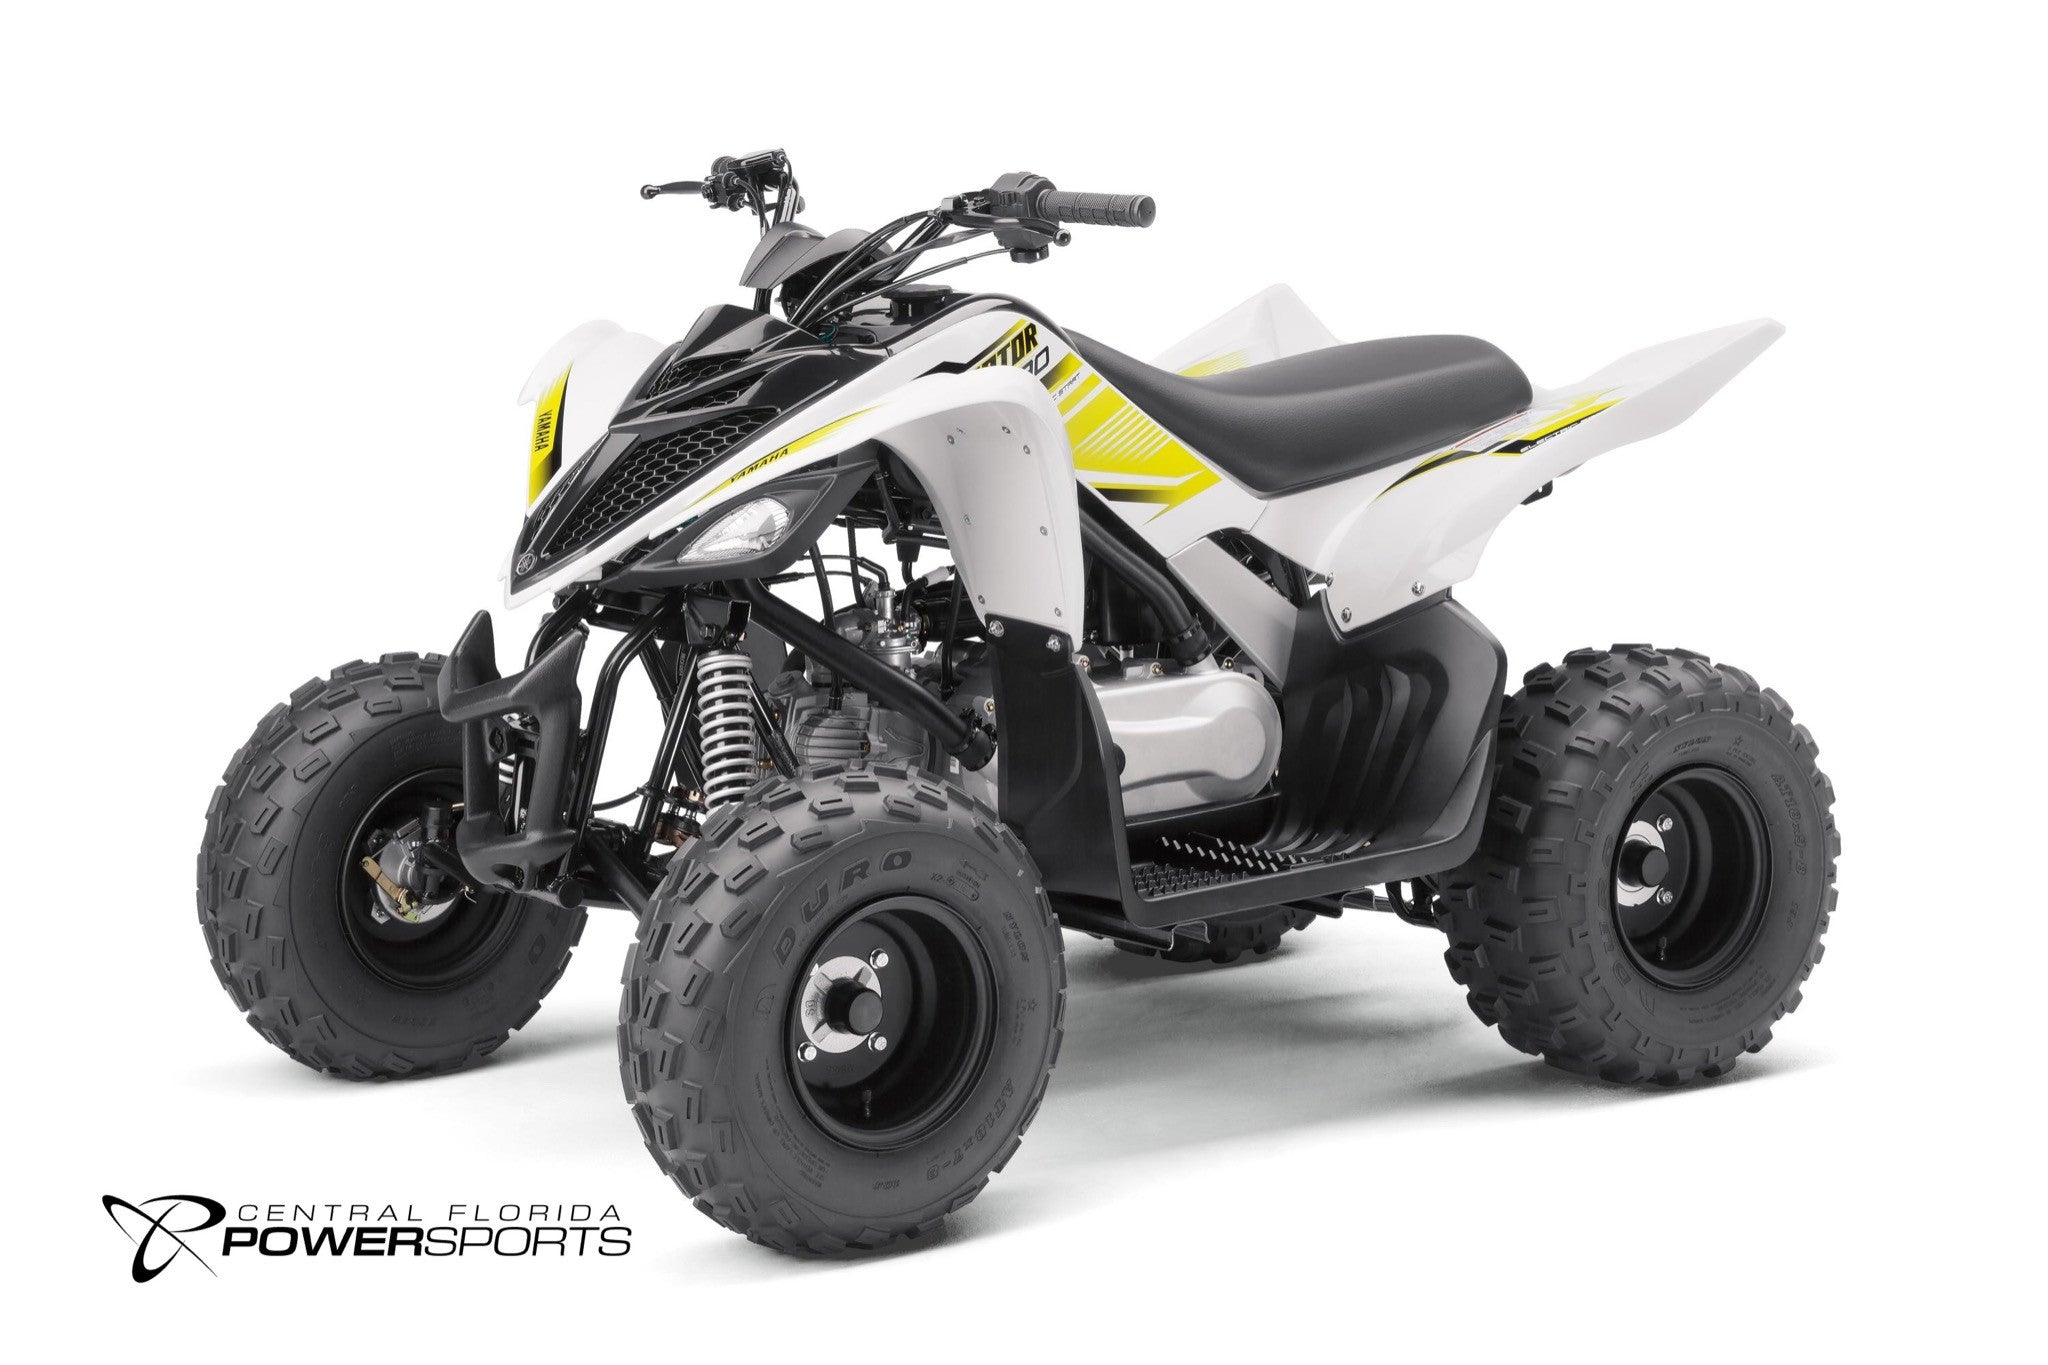 ... 2017 Yamaha Raptor 90 - ATV For Sale - Central Florida PowerSports ...